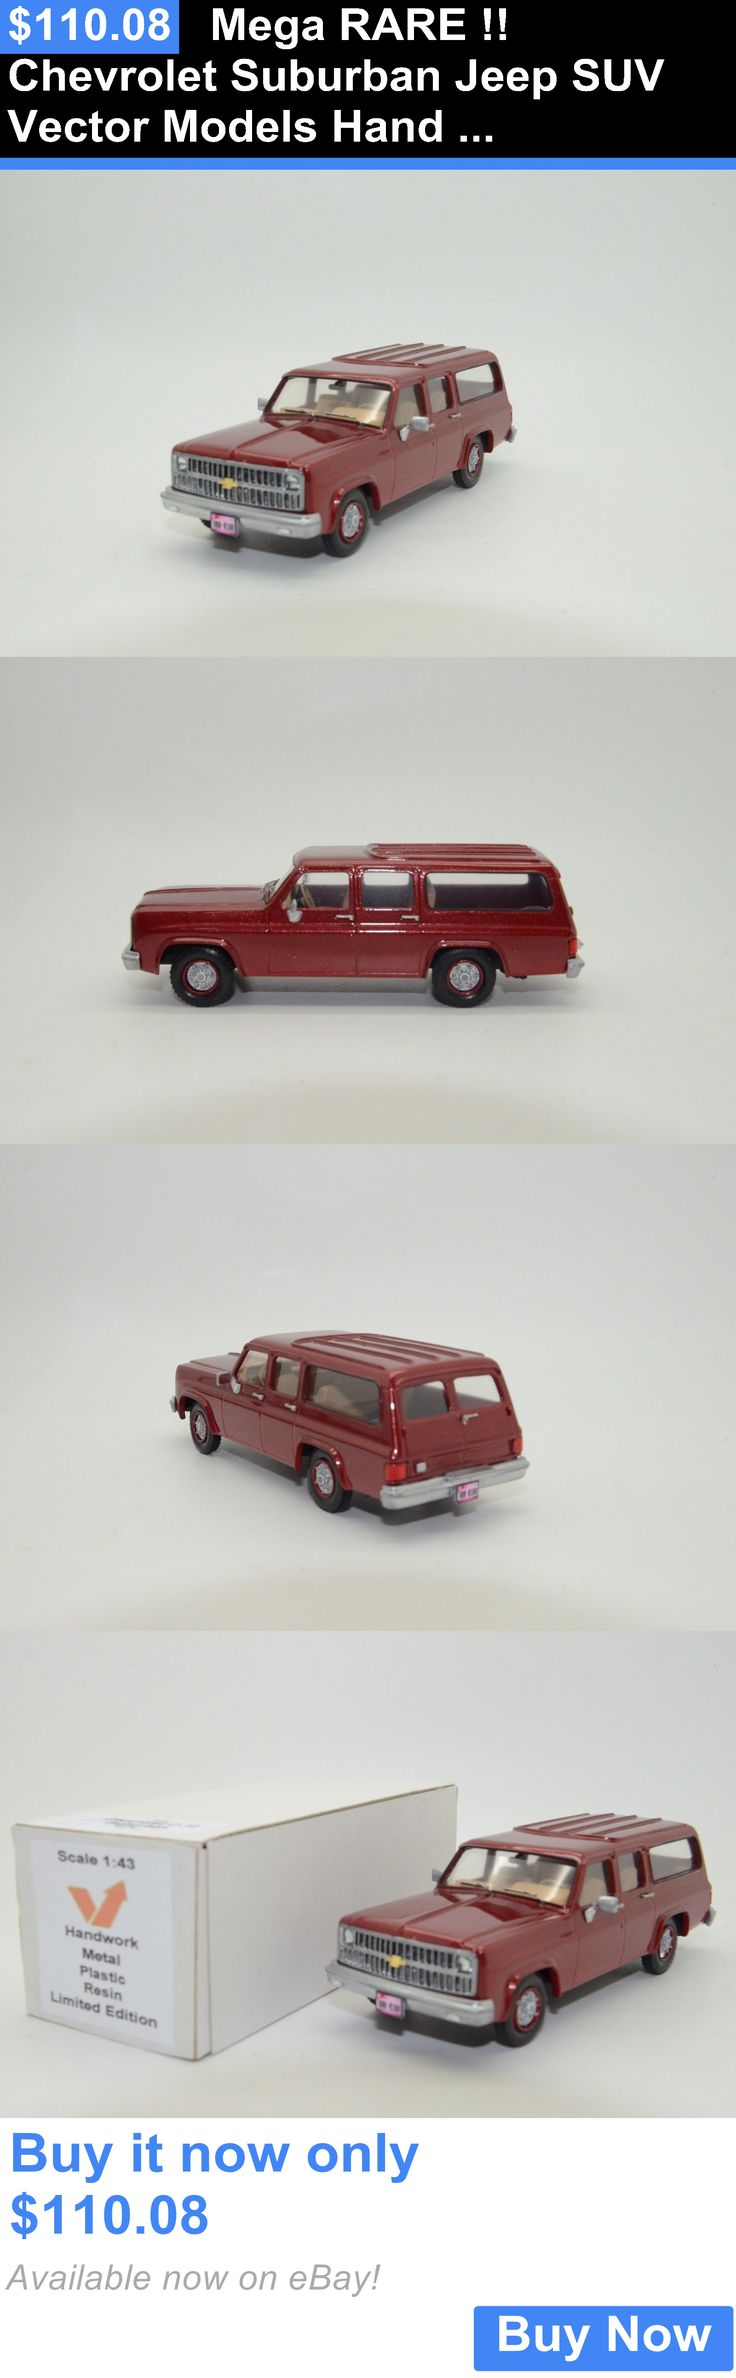 SUVs: Mega Rare !! Chevrolet Suburban Jeep Suv Vector Models Hand Made 1/43 BUY IT NOW ONLY: $110.08